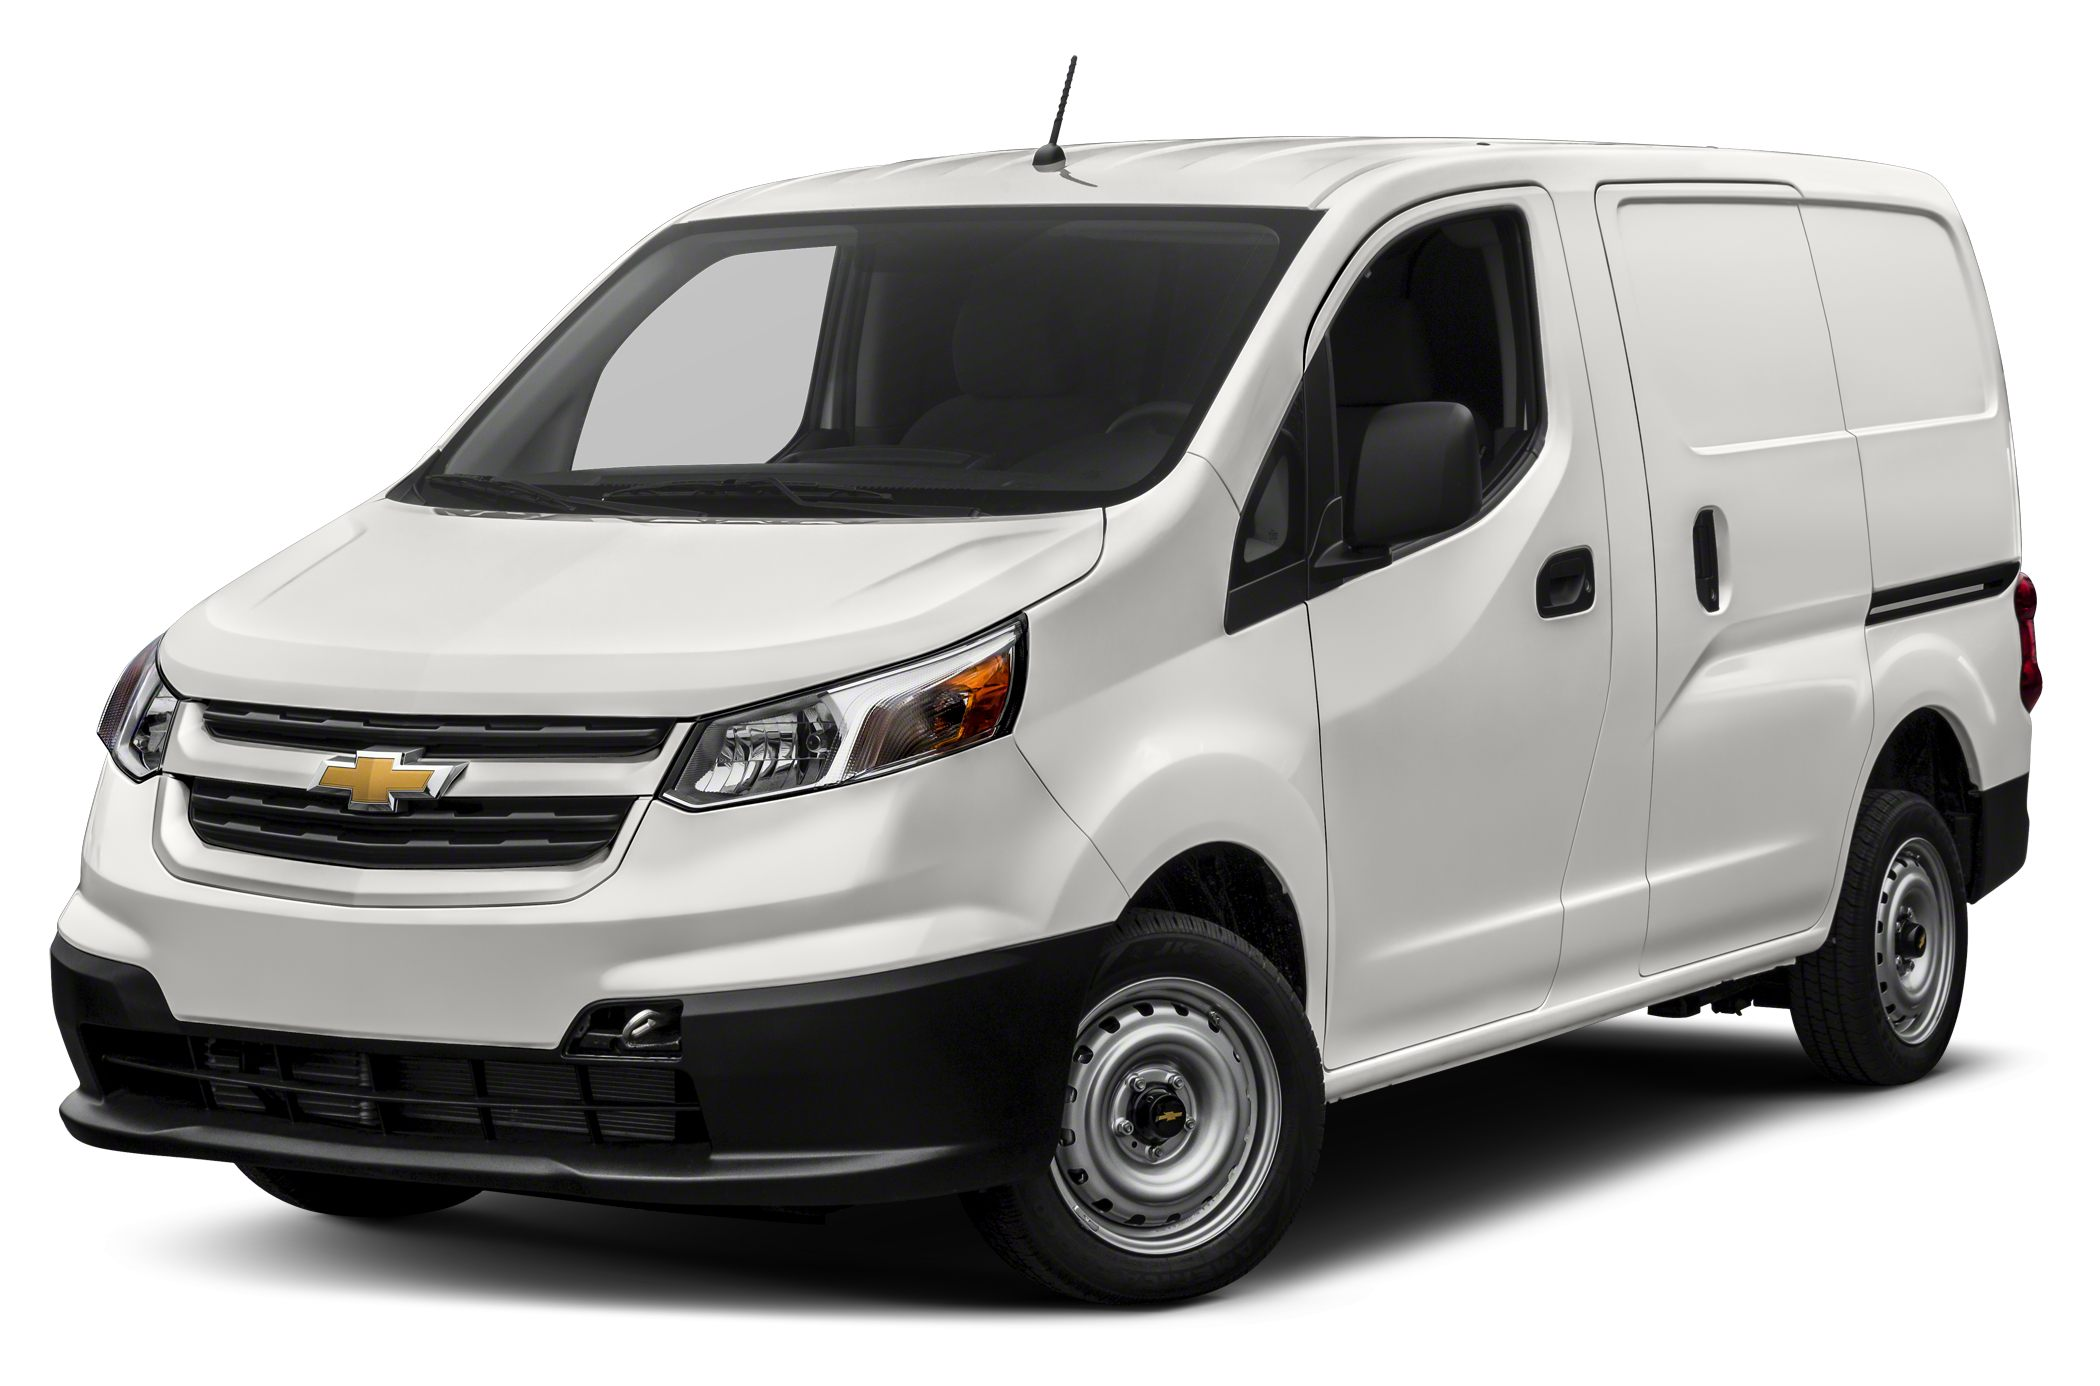 2015 chevrolet city express van 2017 2018 best cars. Black Bedroom Furniture Sets. Home Design Ideas